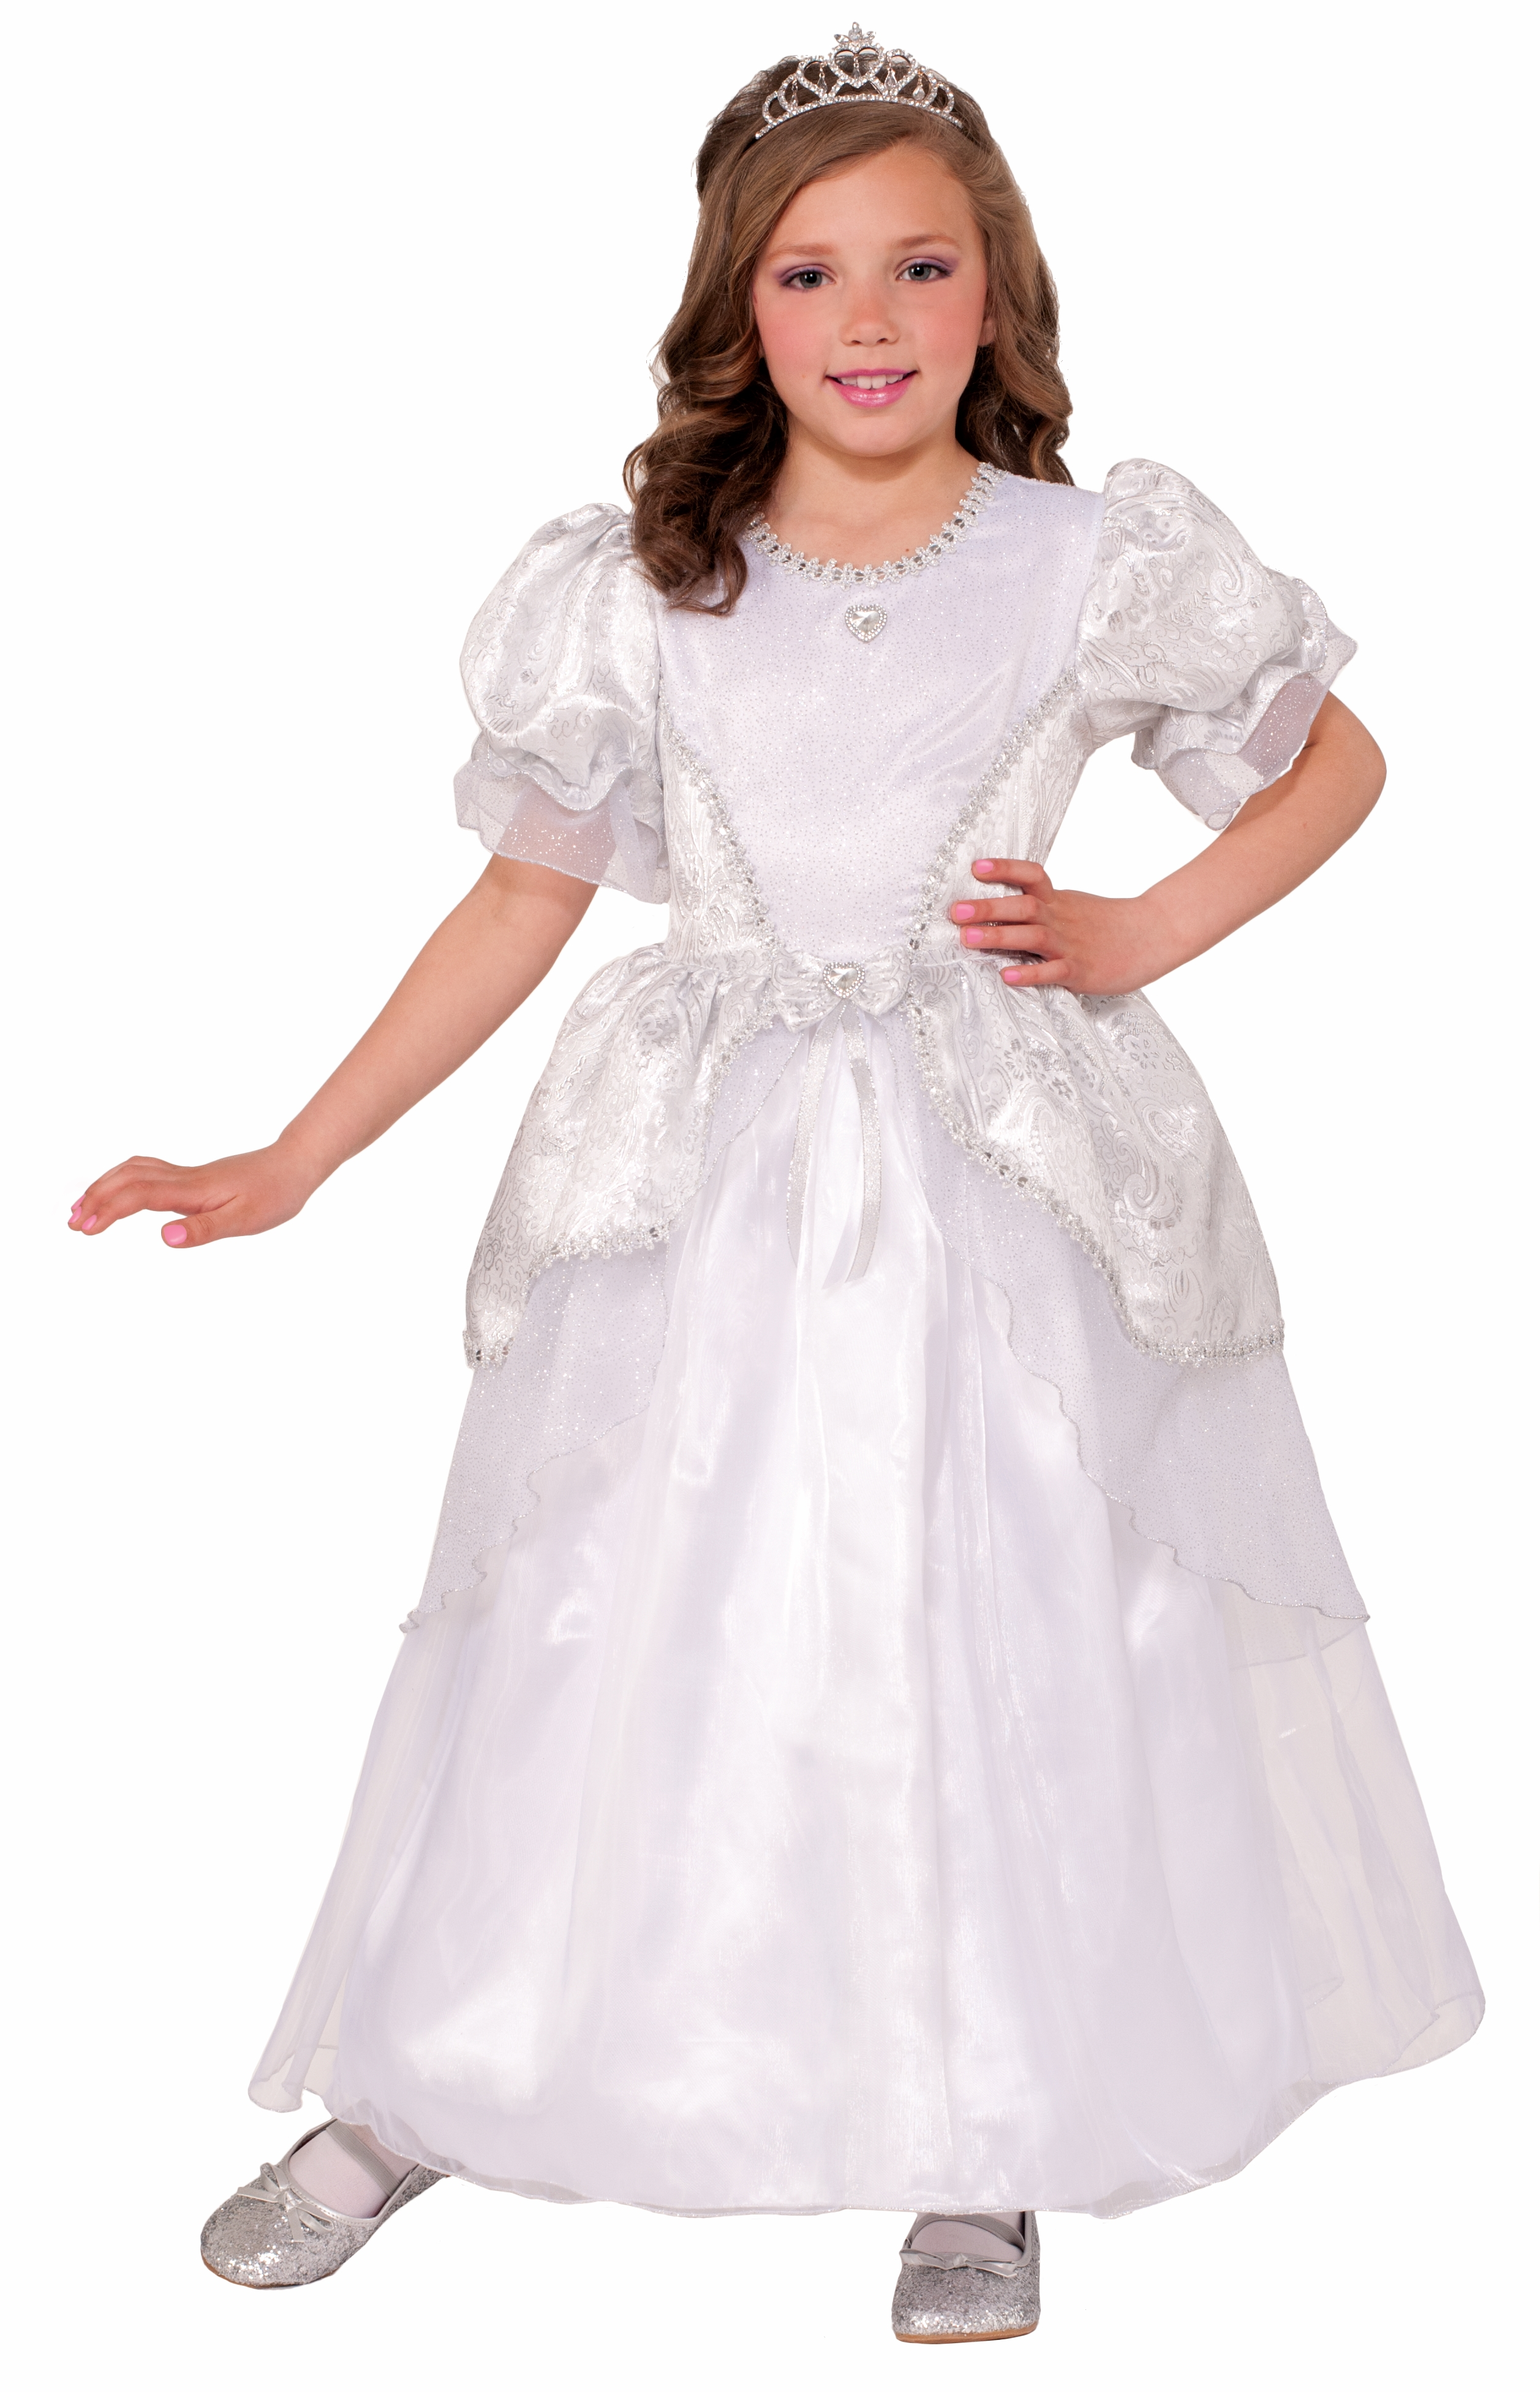 wedding dress halloween costume Deluxe Child Princess Pearl White Wedding Costume Dress Girls Small